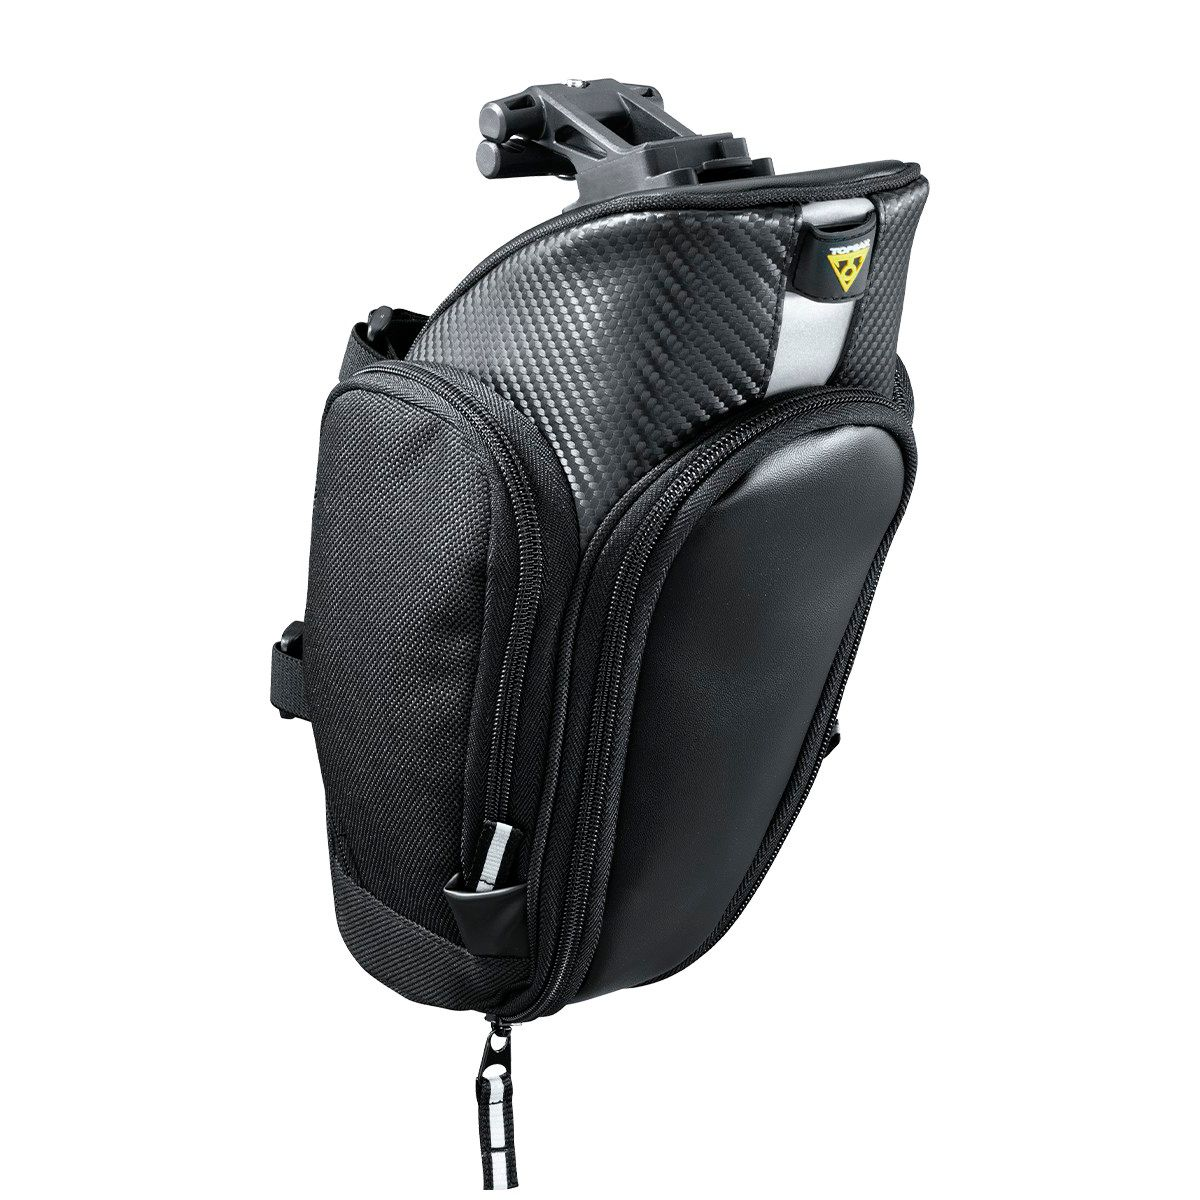 MondoPack XL saddle bag